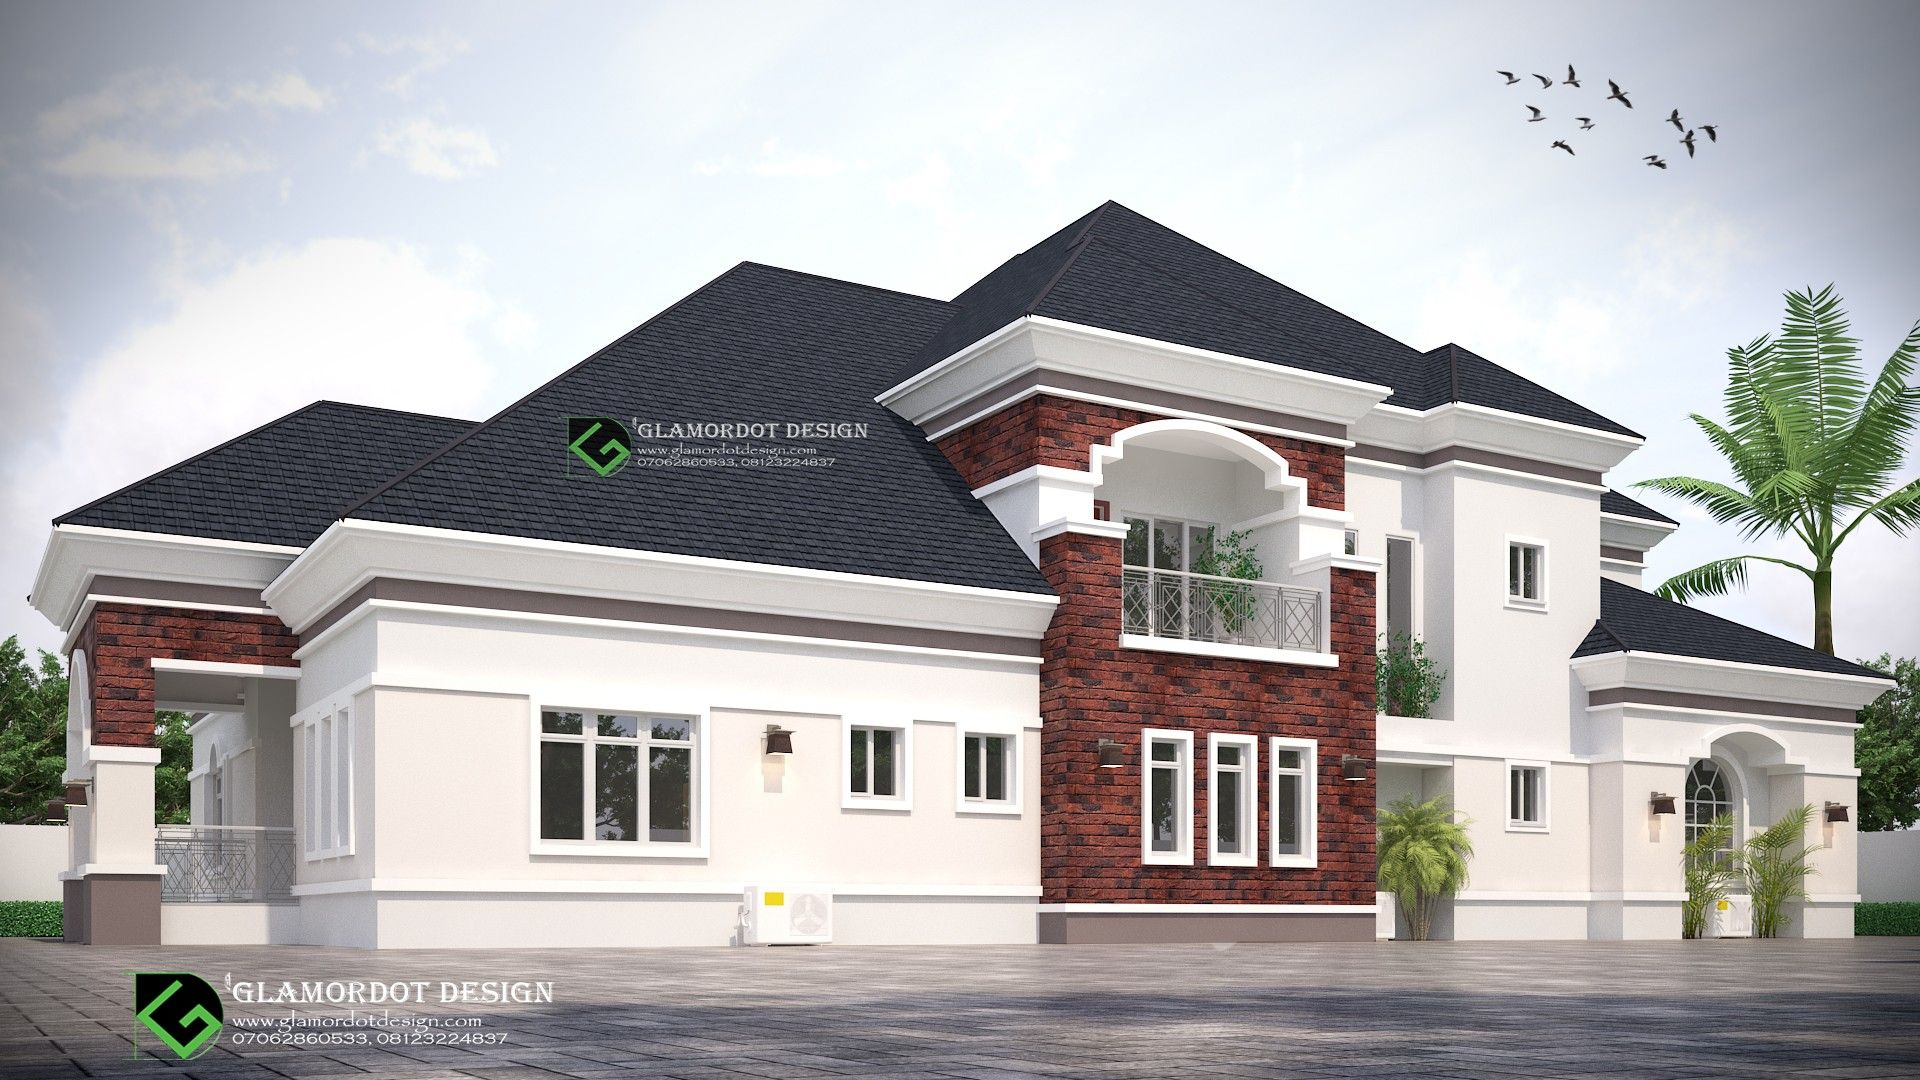 Architectural Design Of A Proposed 5 Bedroom Bungalow With A Pent House Nigeria Bungalow House Plans Duplex House Design House Roof Design